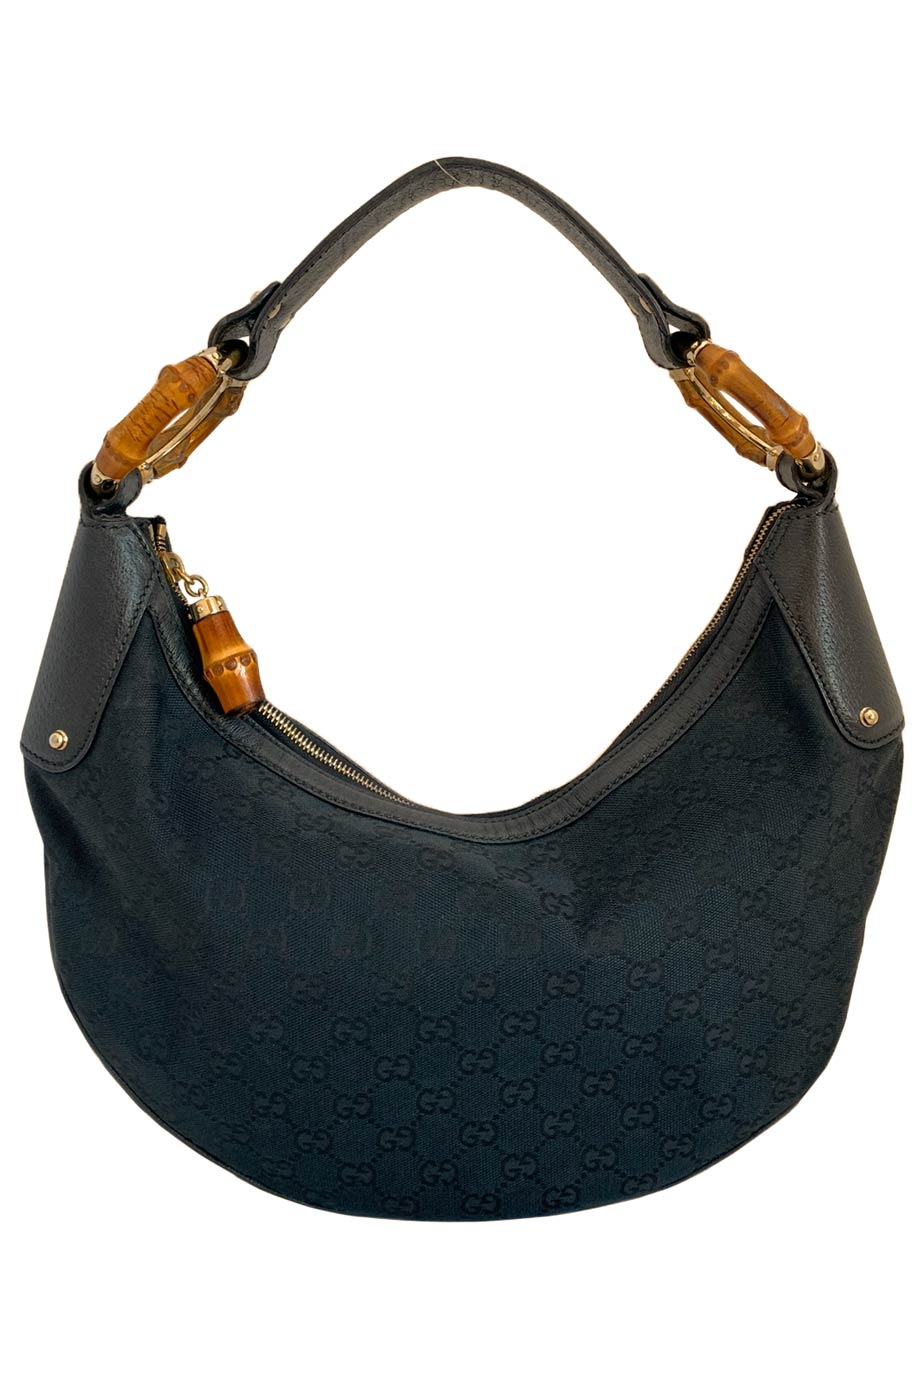 Gucci Black GG Monogram Canvas Bamboo Ring Hobo Shoulder Bag-Style Therapy